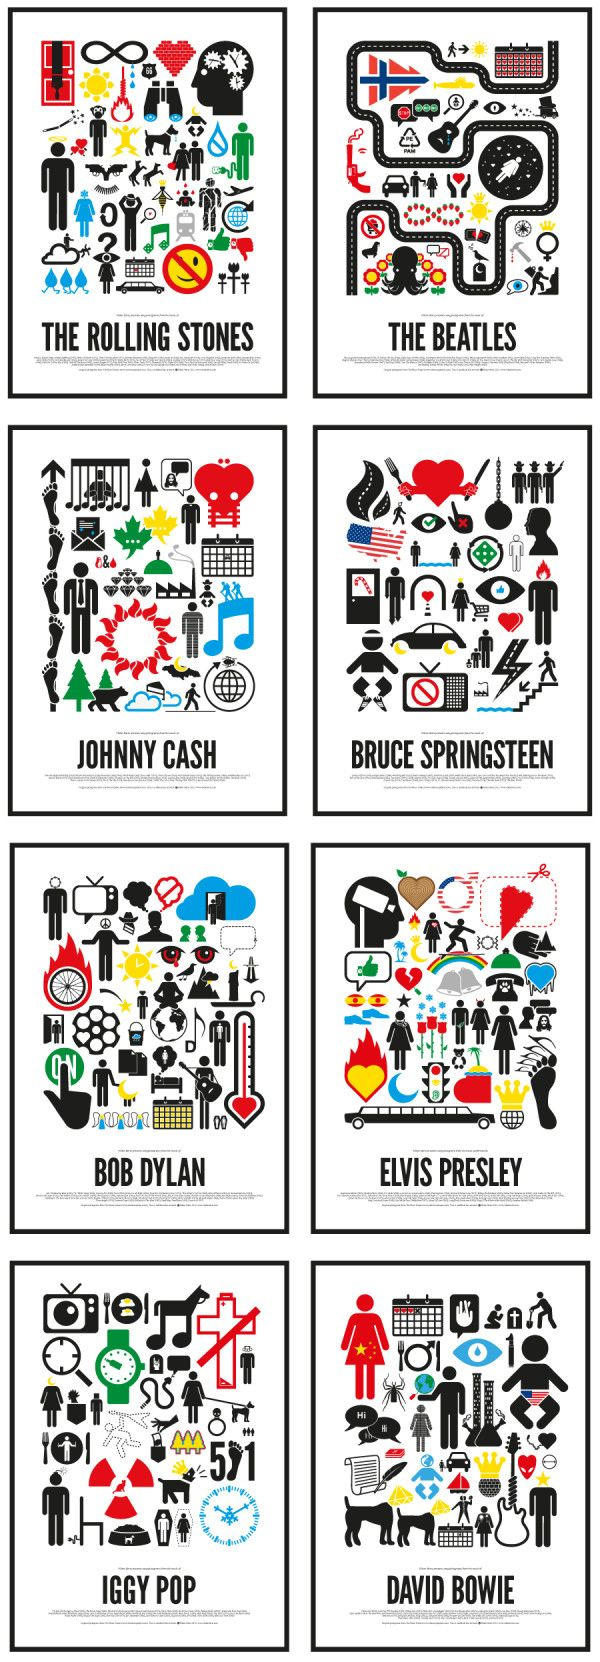 Music pictograms that chronologue icons of 20th century - gre... on Twitpic